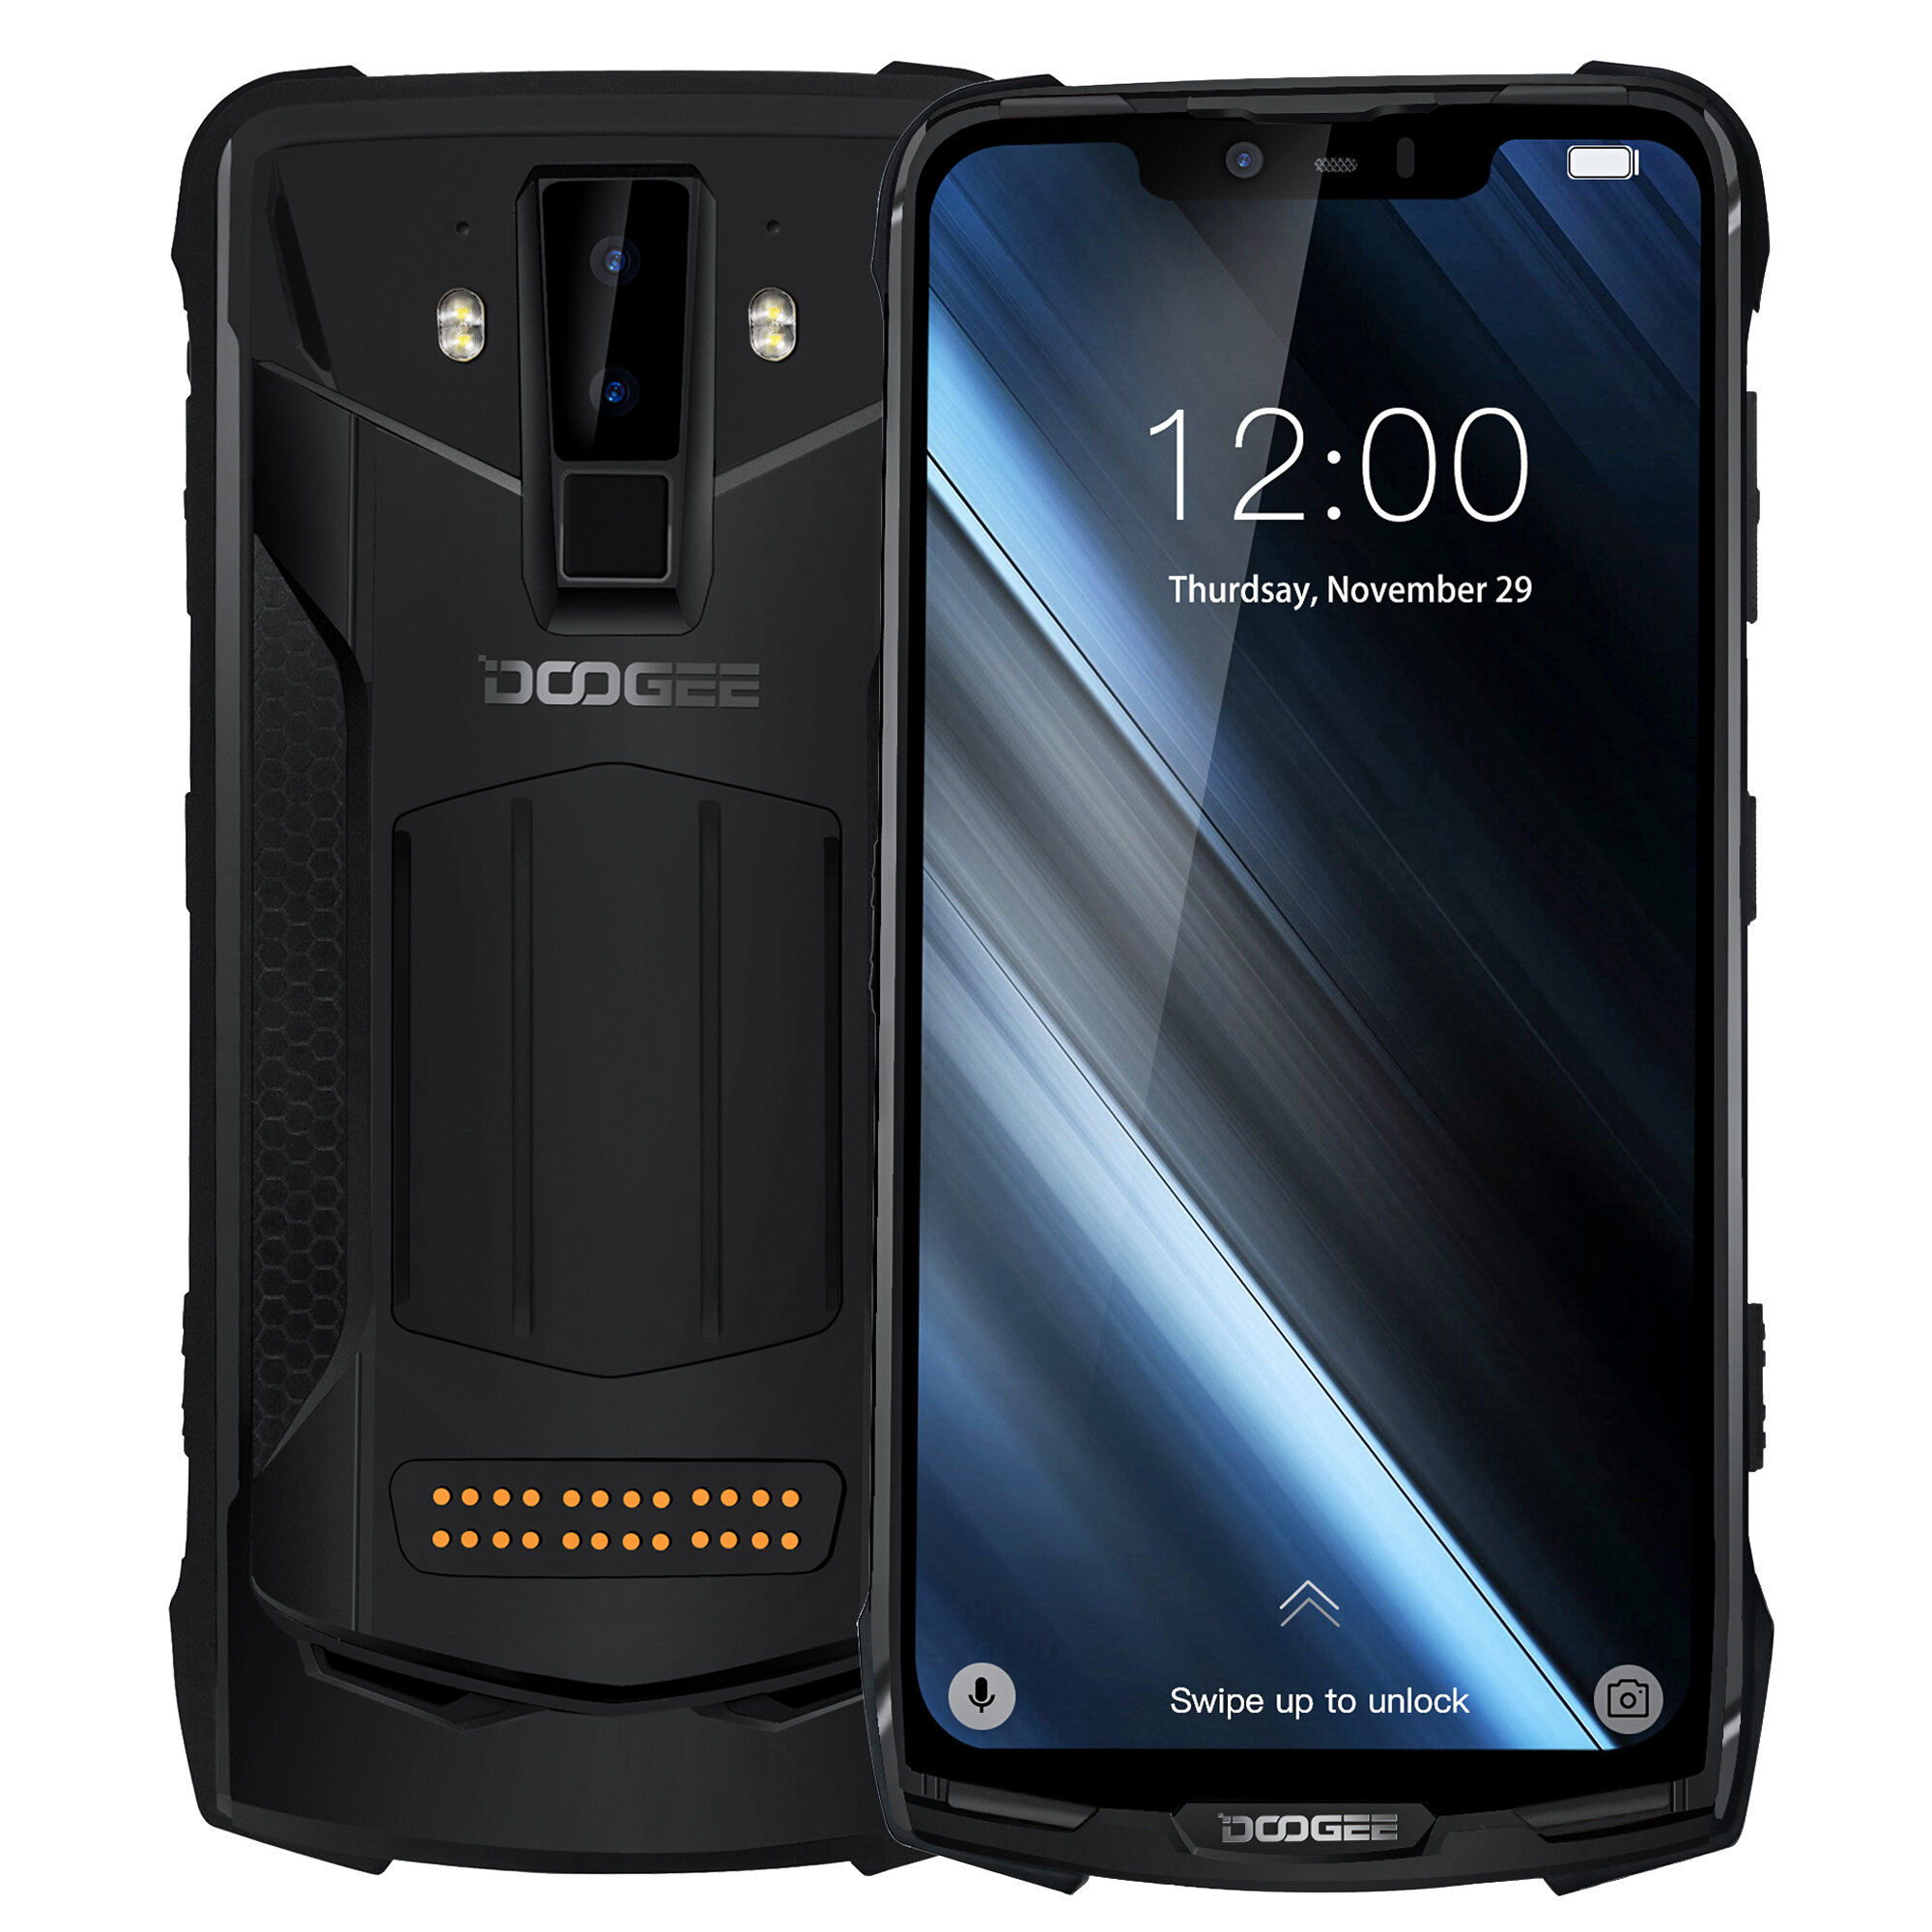 DOOGEE S90C Global Bands IP68 Waterproof 6.18 inch FHD+ NFC 5050mAh 16MP+8MP AI Dual Rear Cameras 4GB 64GB Helio P70 4G Smartphone - Black